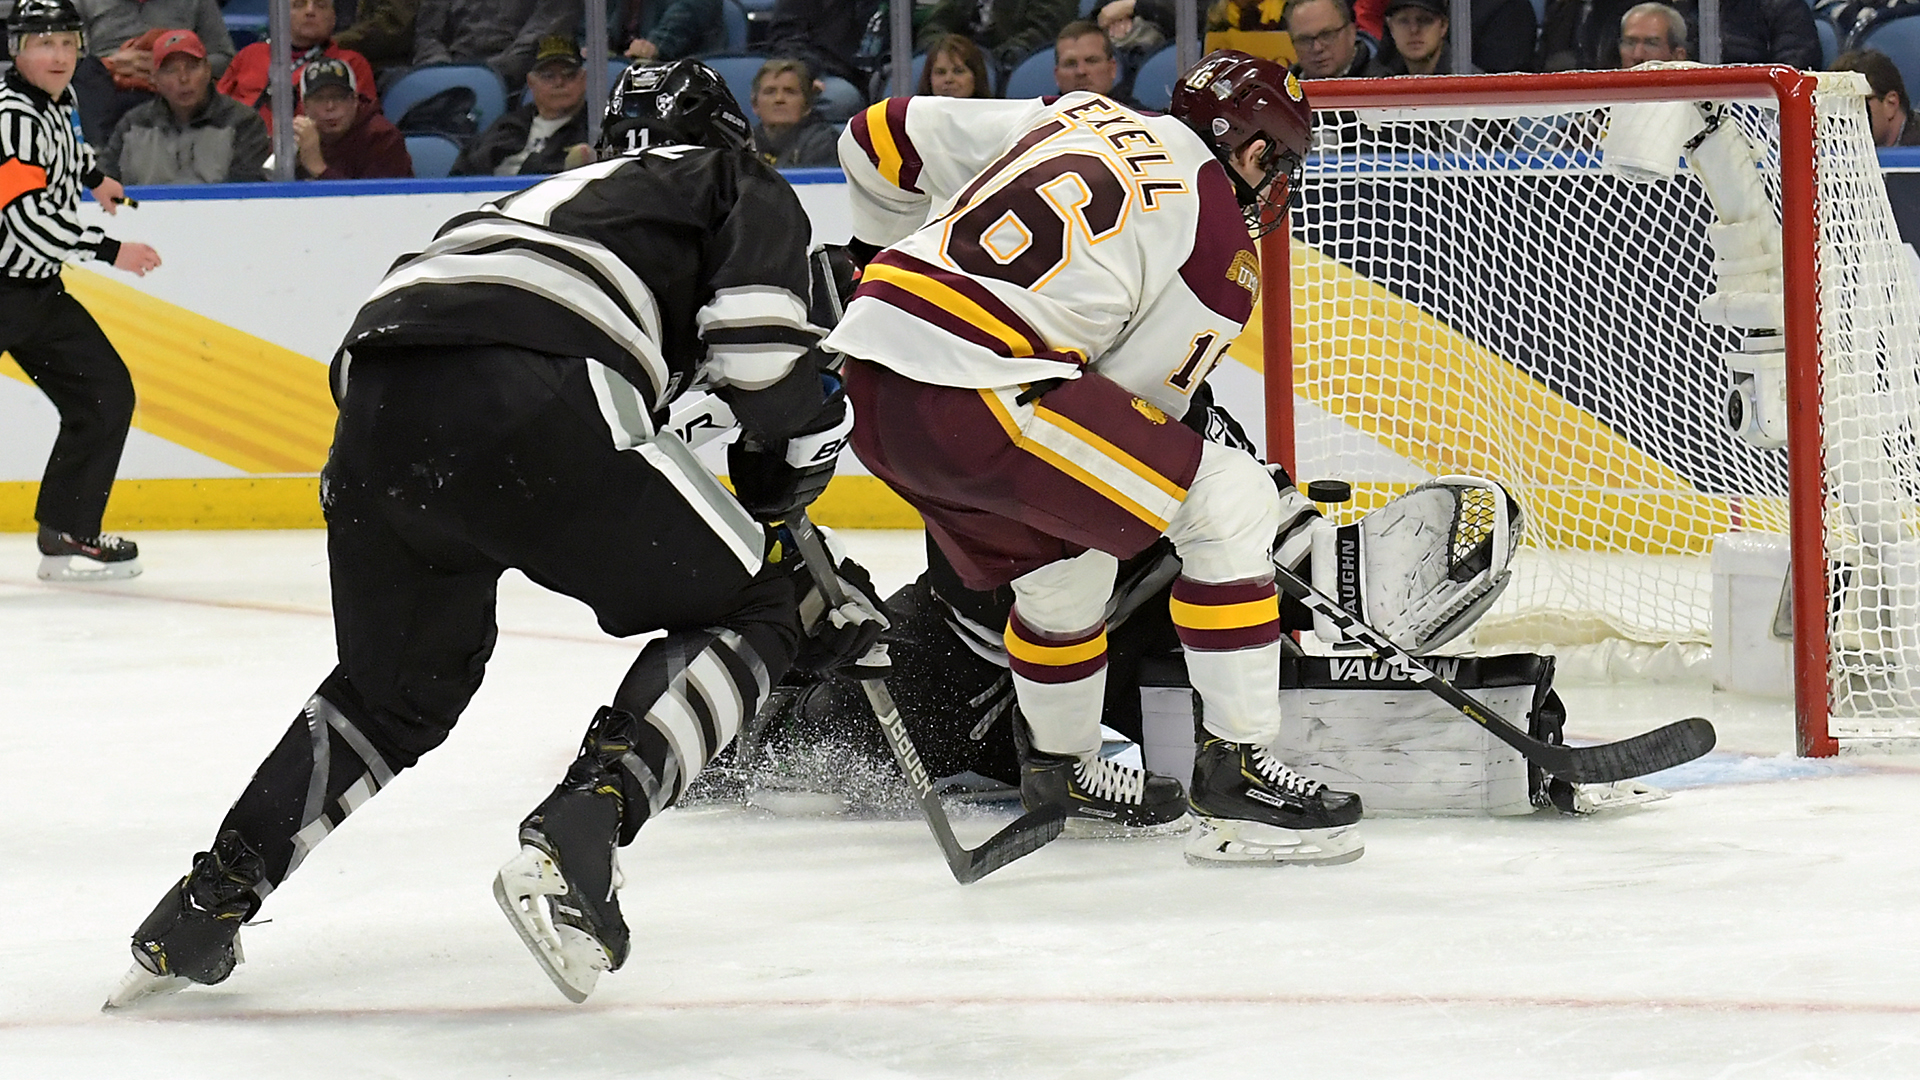 Billy Exell (16) scored the game-winning goal against the Providence Friars Thursday night in Buffalo, NY. Photo courtesy of: UMD Athletics